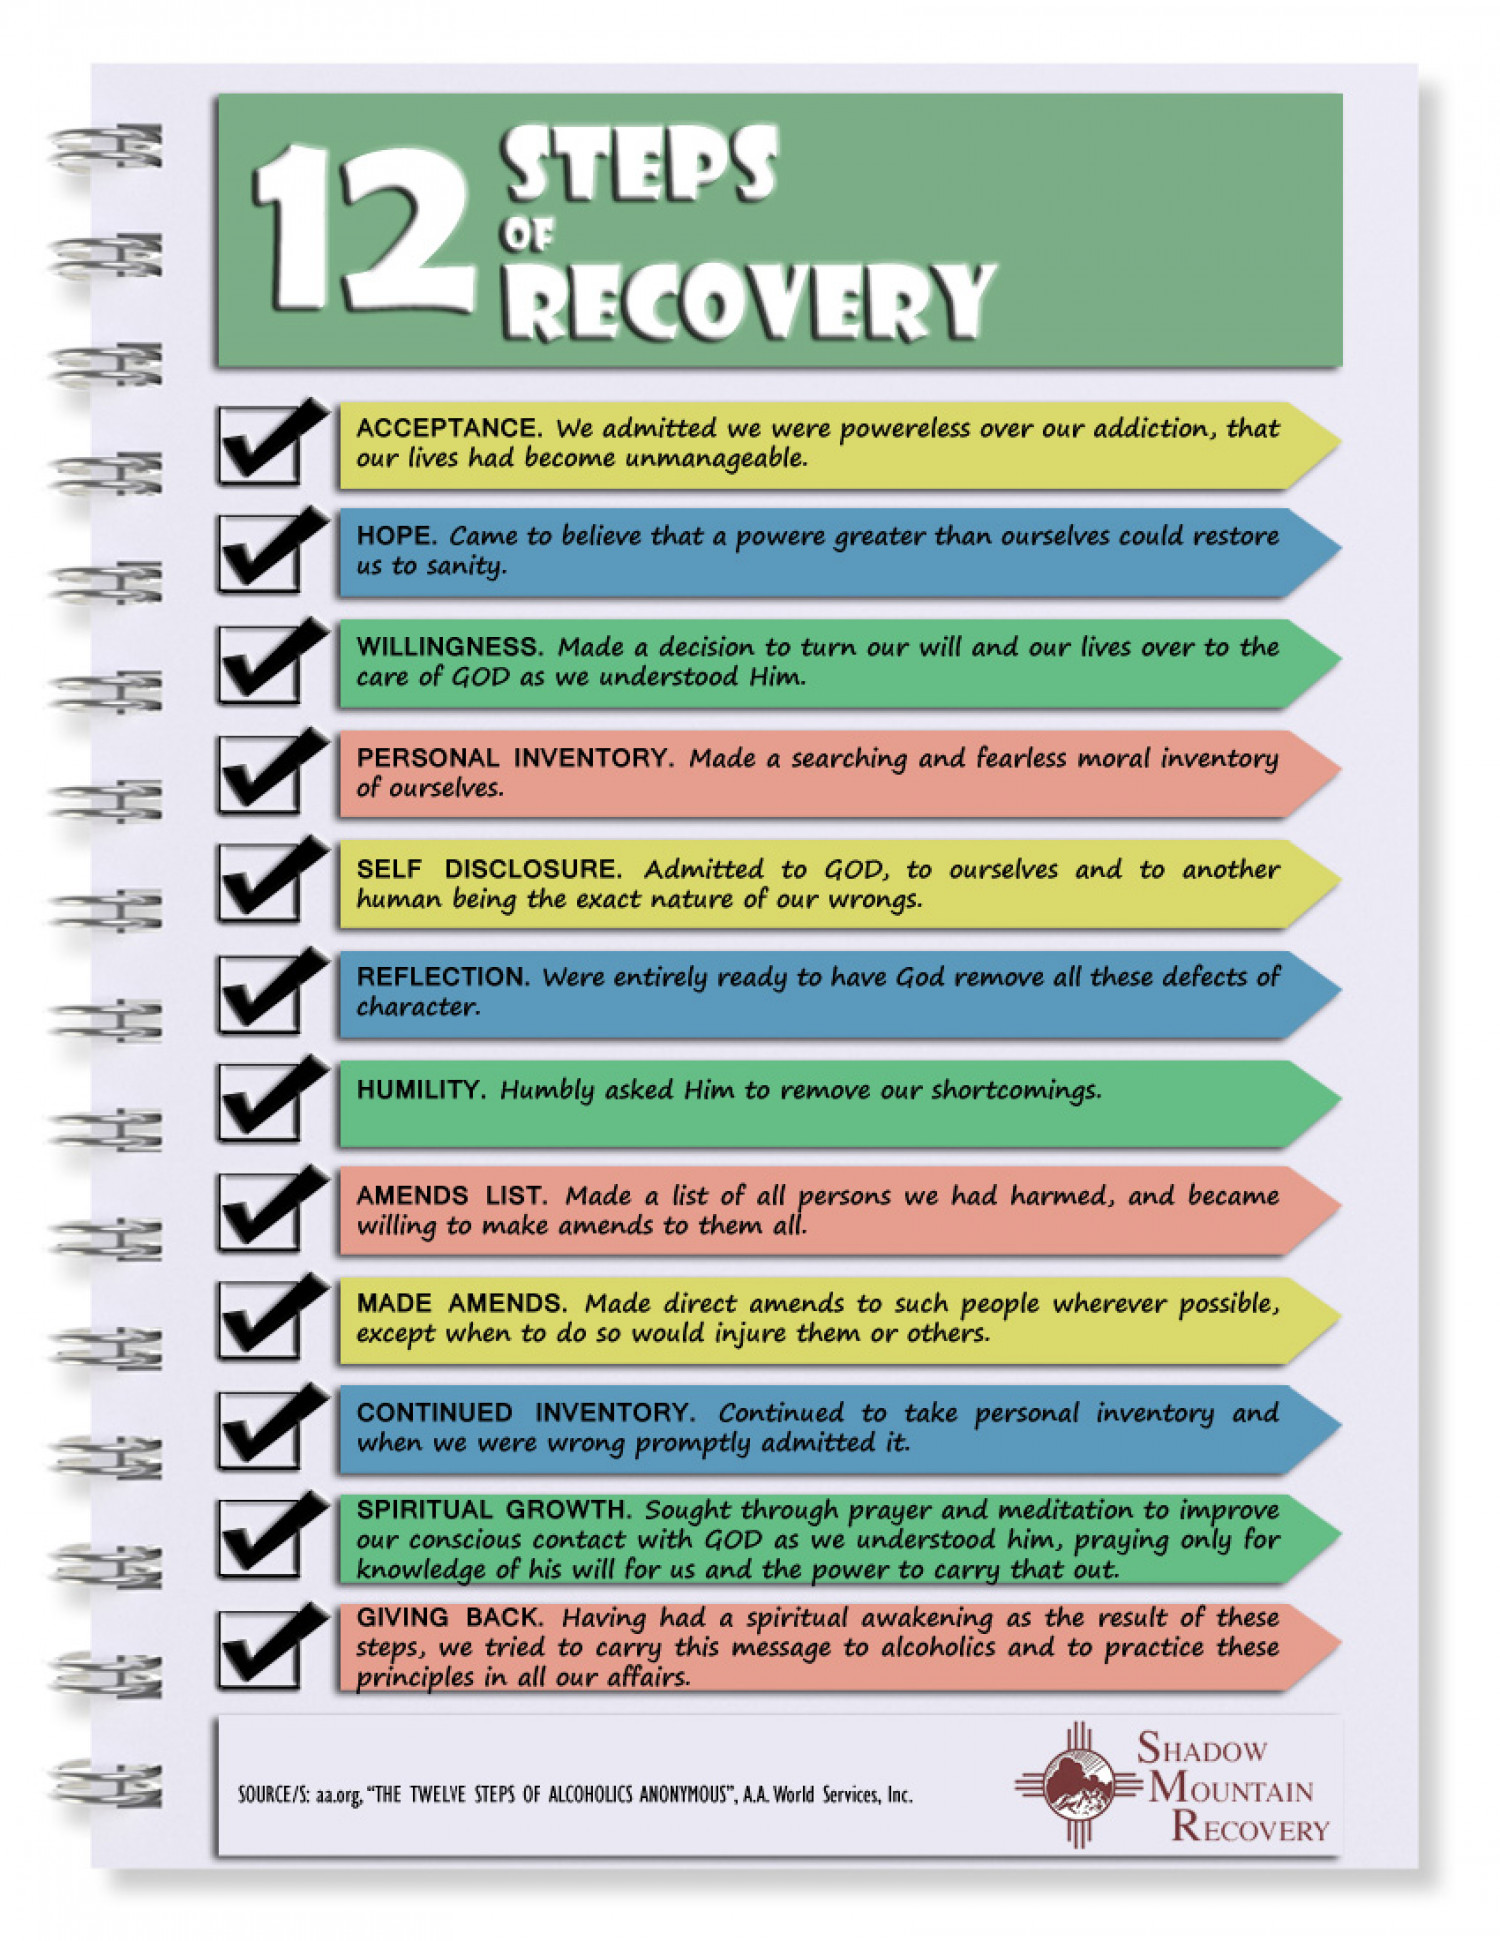 Worksheets 12 Steps Of Recovery Worksheets 12 step recovery worksheets imperialdesignstudio worksheets